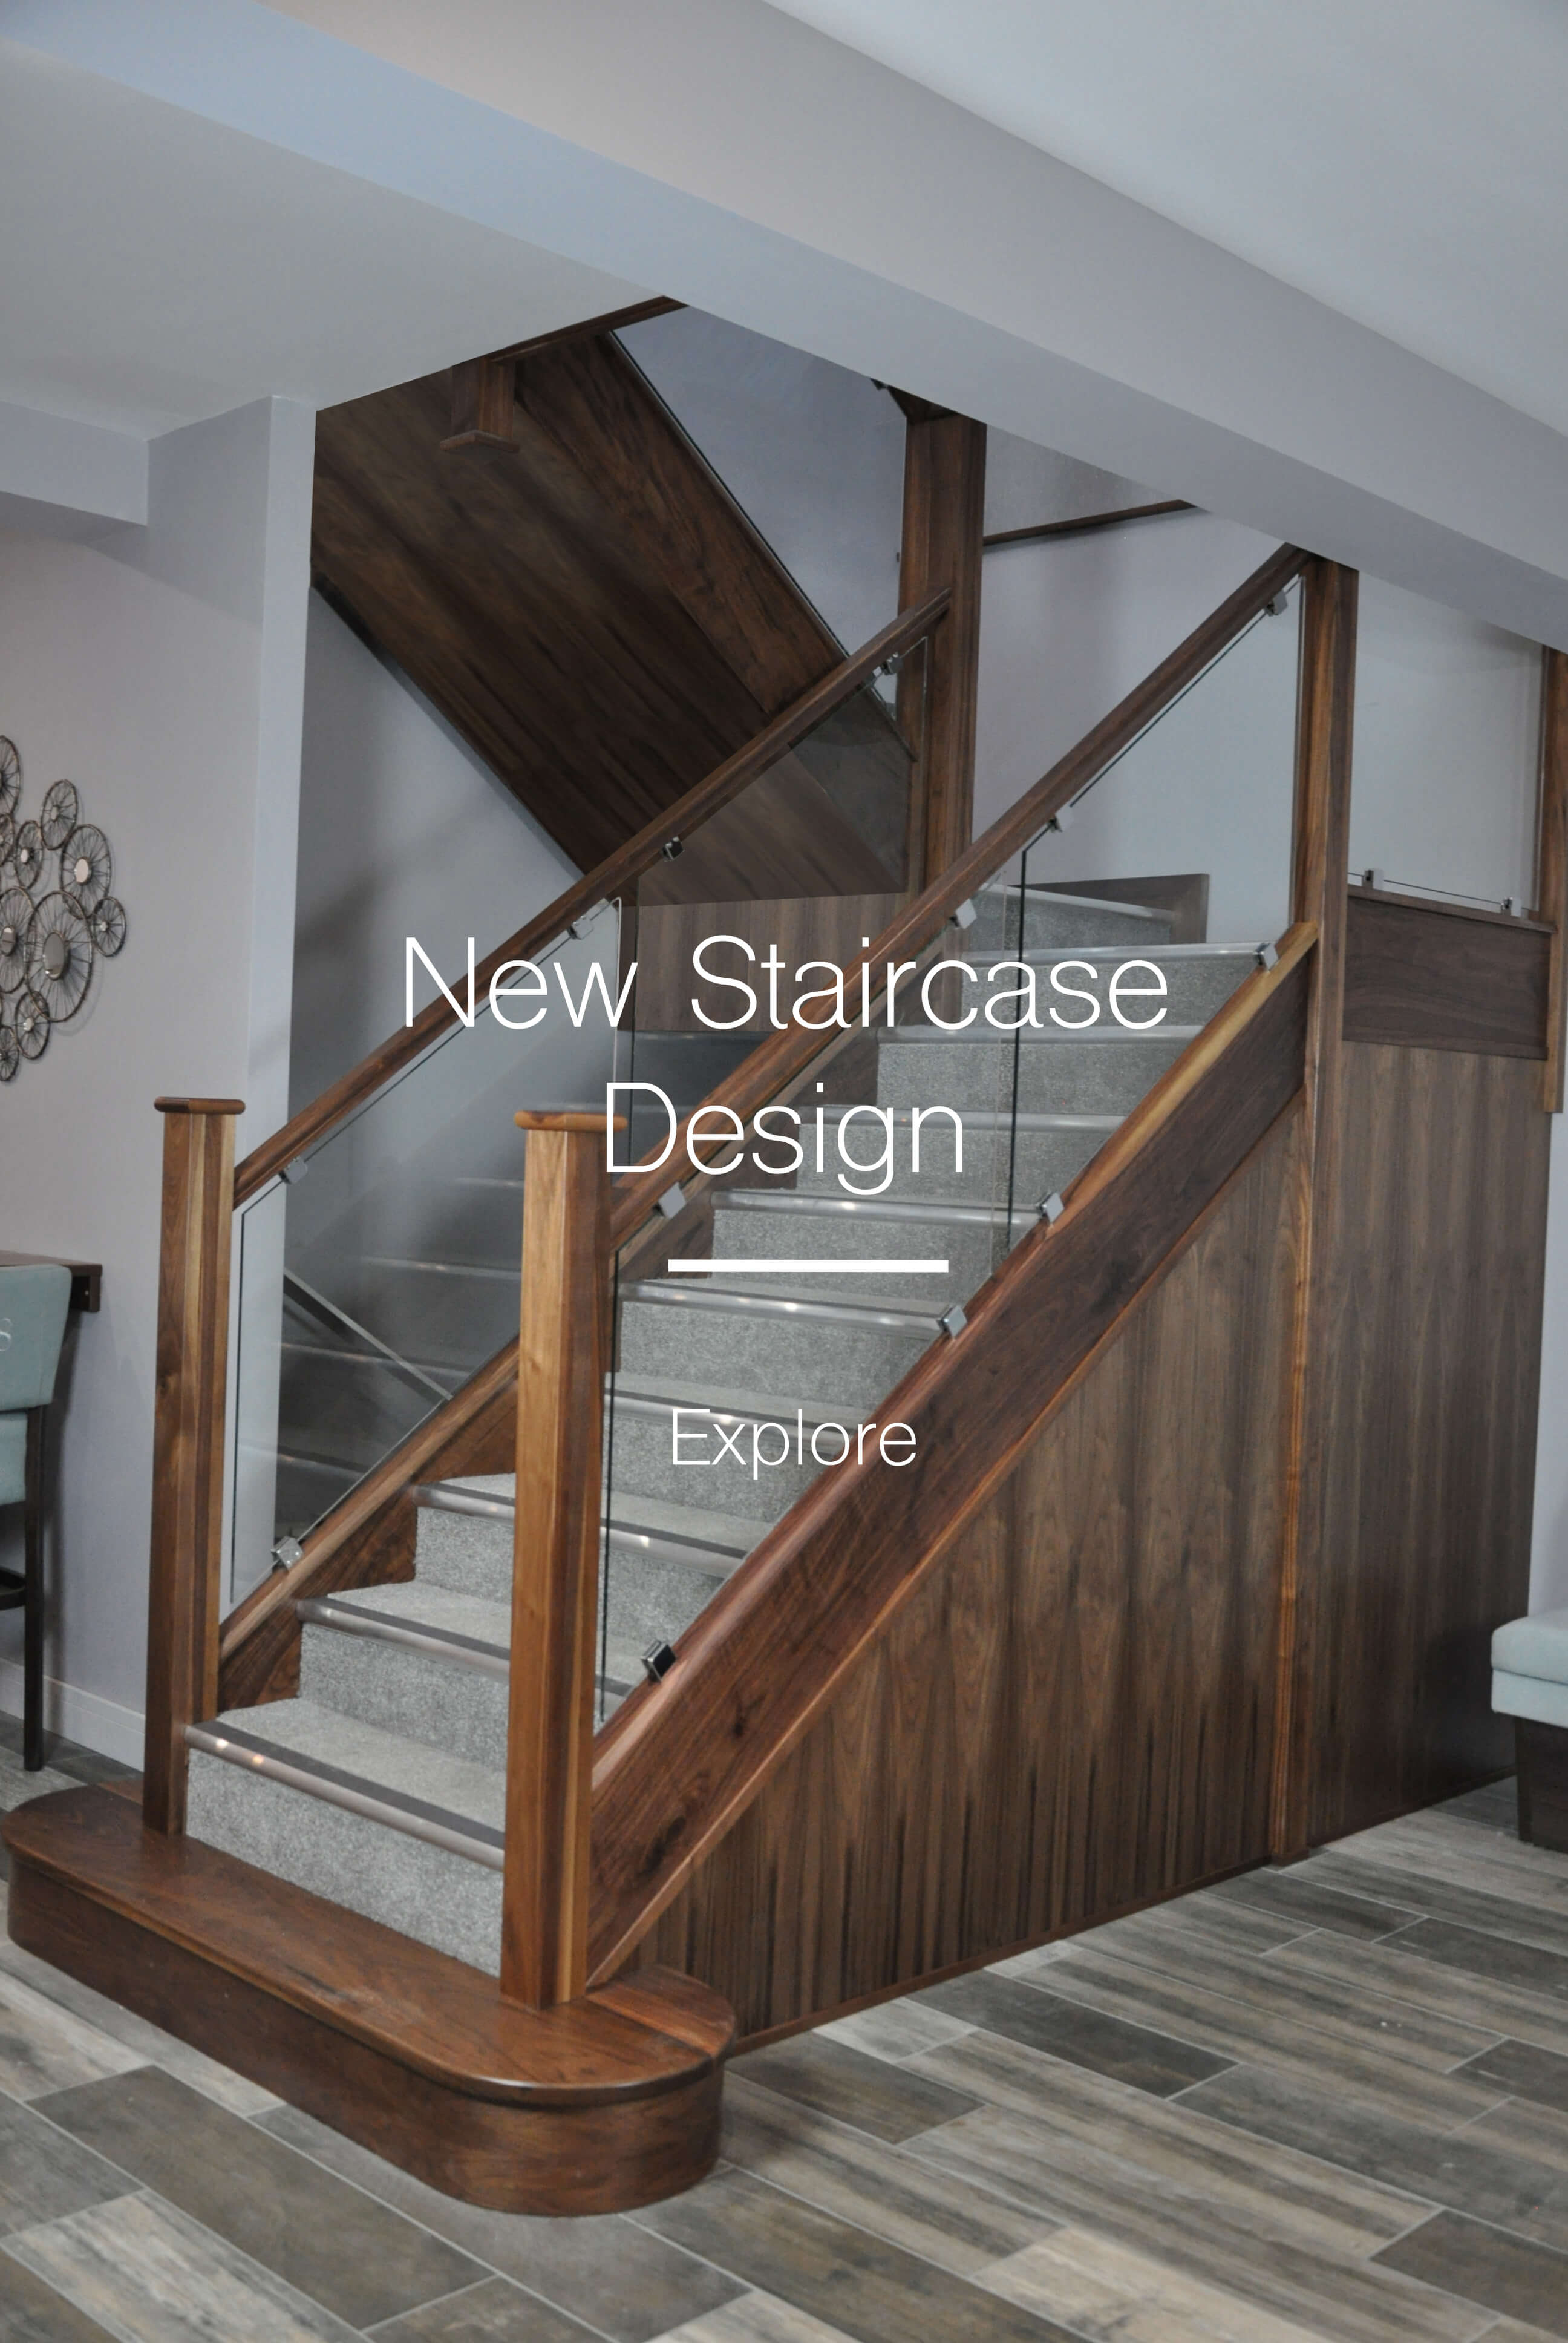 Staircases Manchester   Staircases Cheshire   Staircases Wilmslow